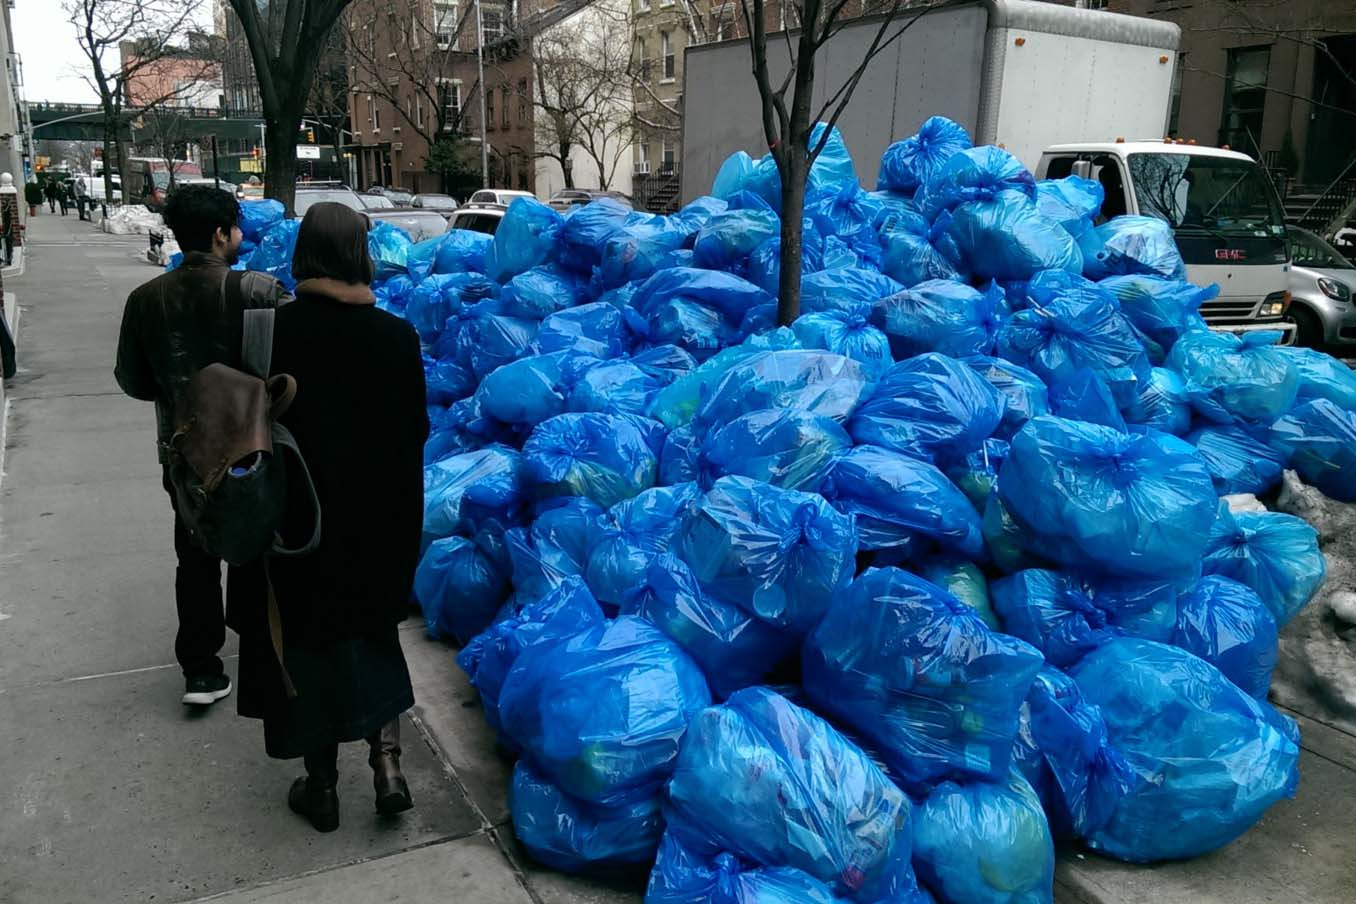 Passersby look at piles of garbage on a NYC sidewalk